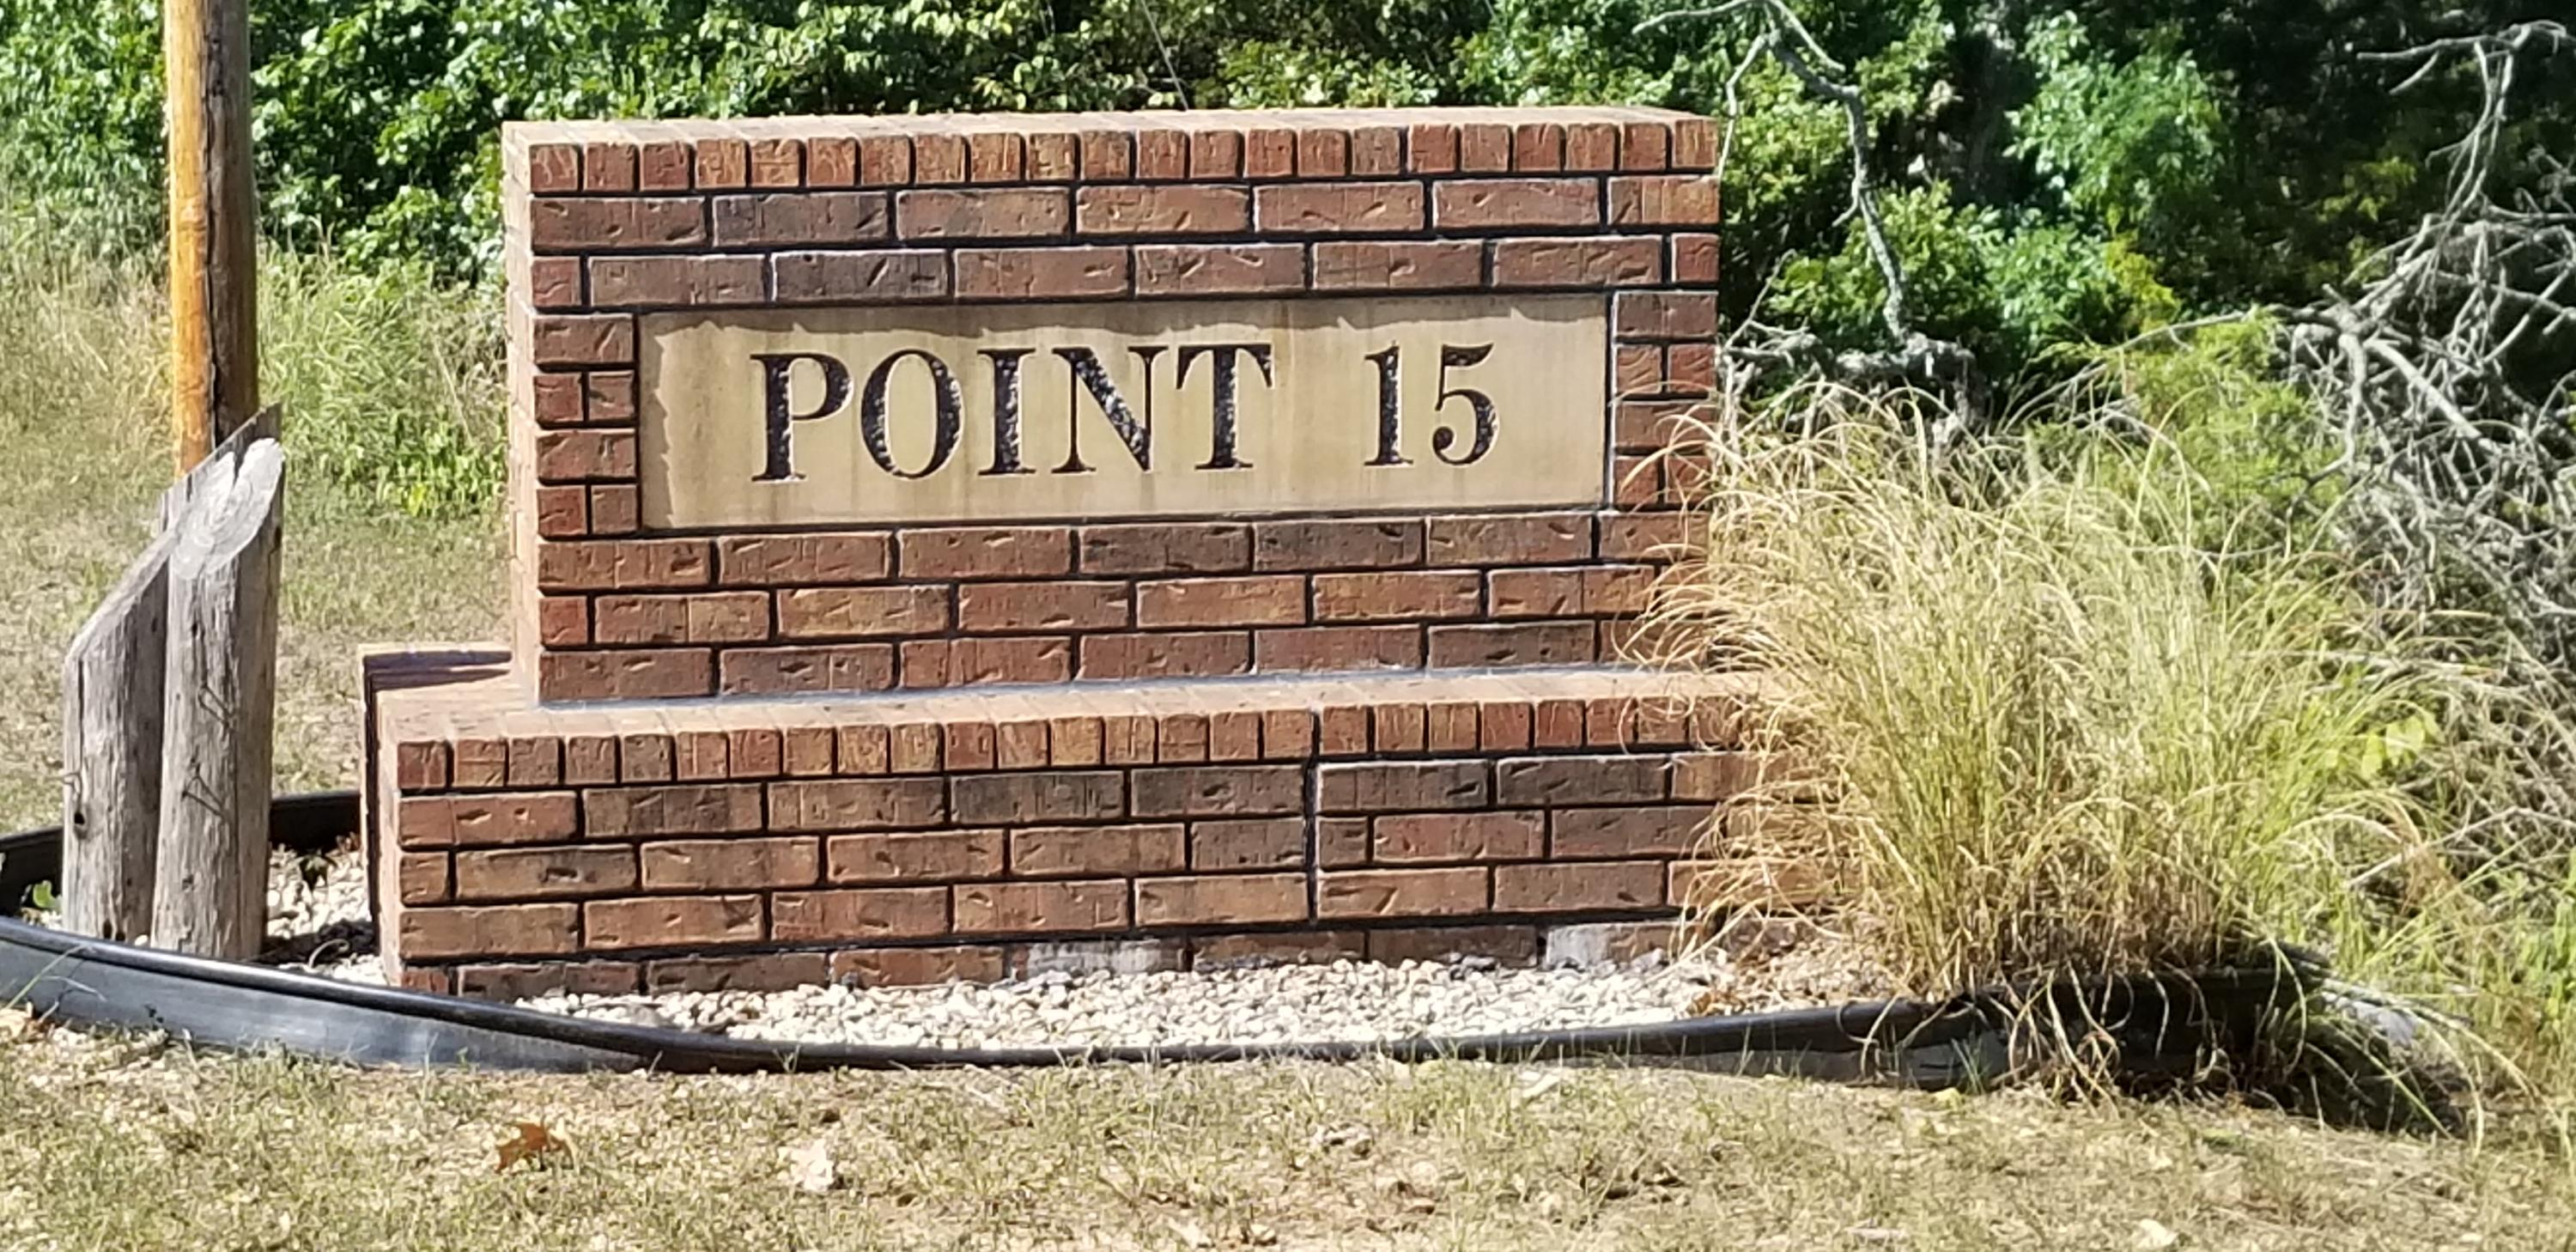 Tbd Point 15 Dr. Cape Fair, MO 65624